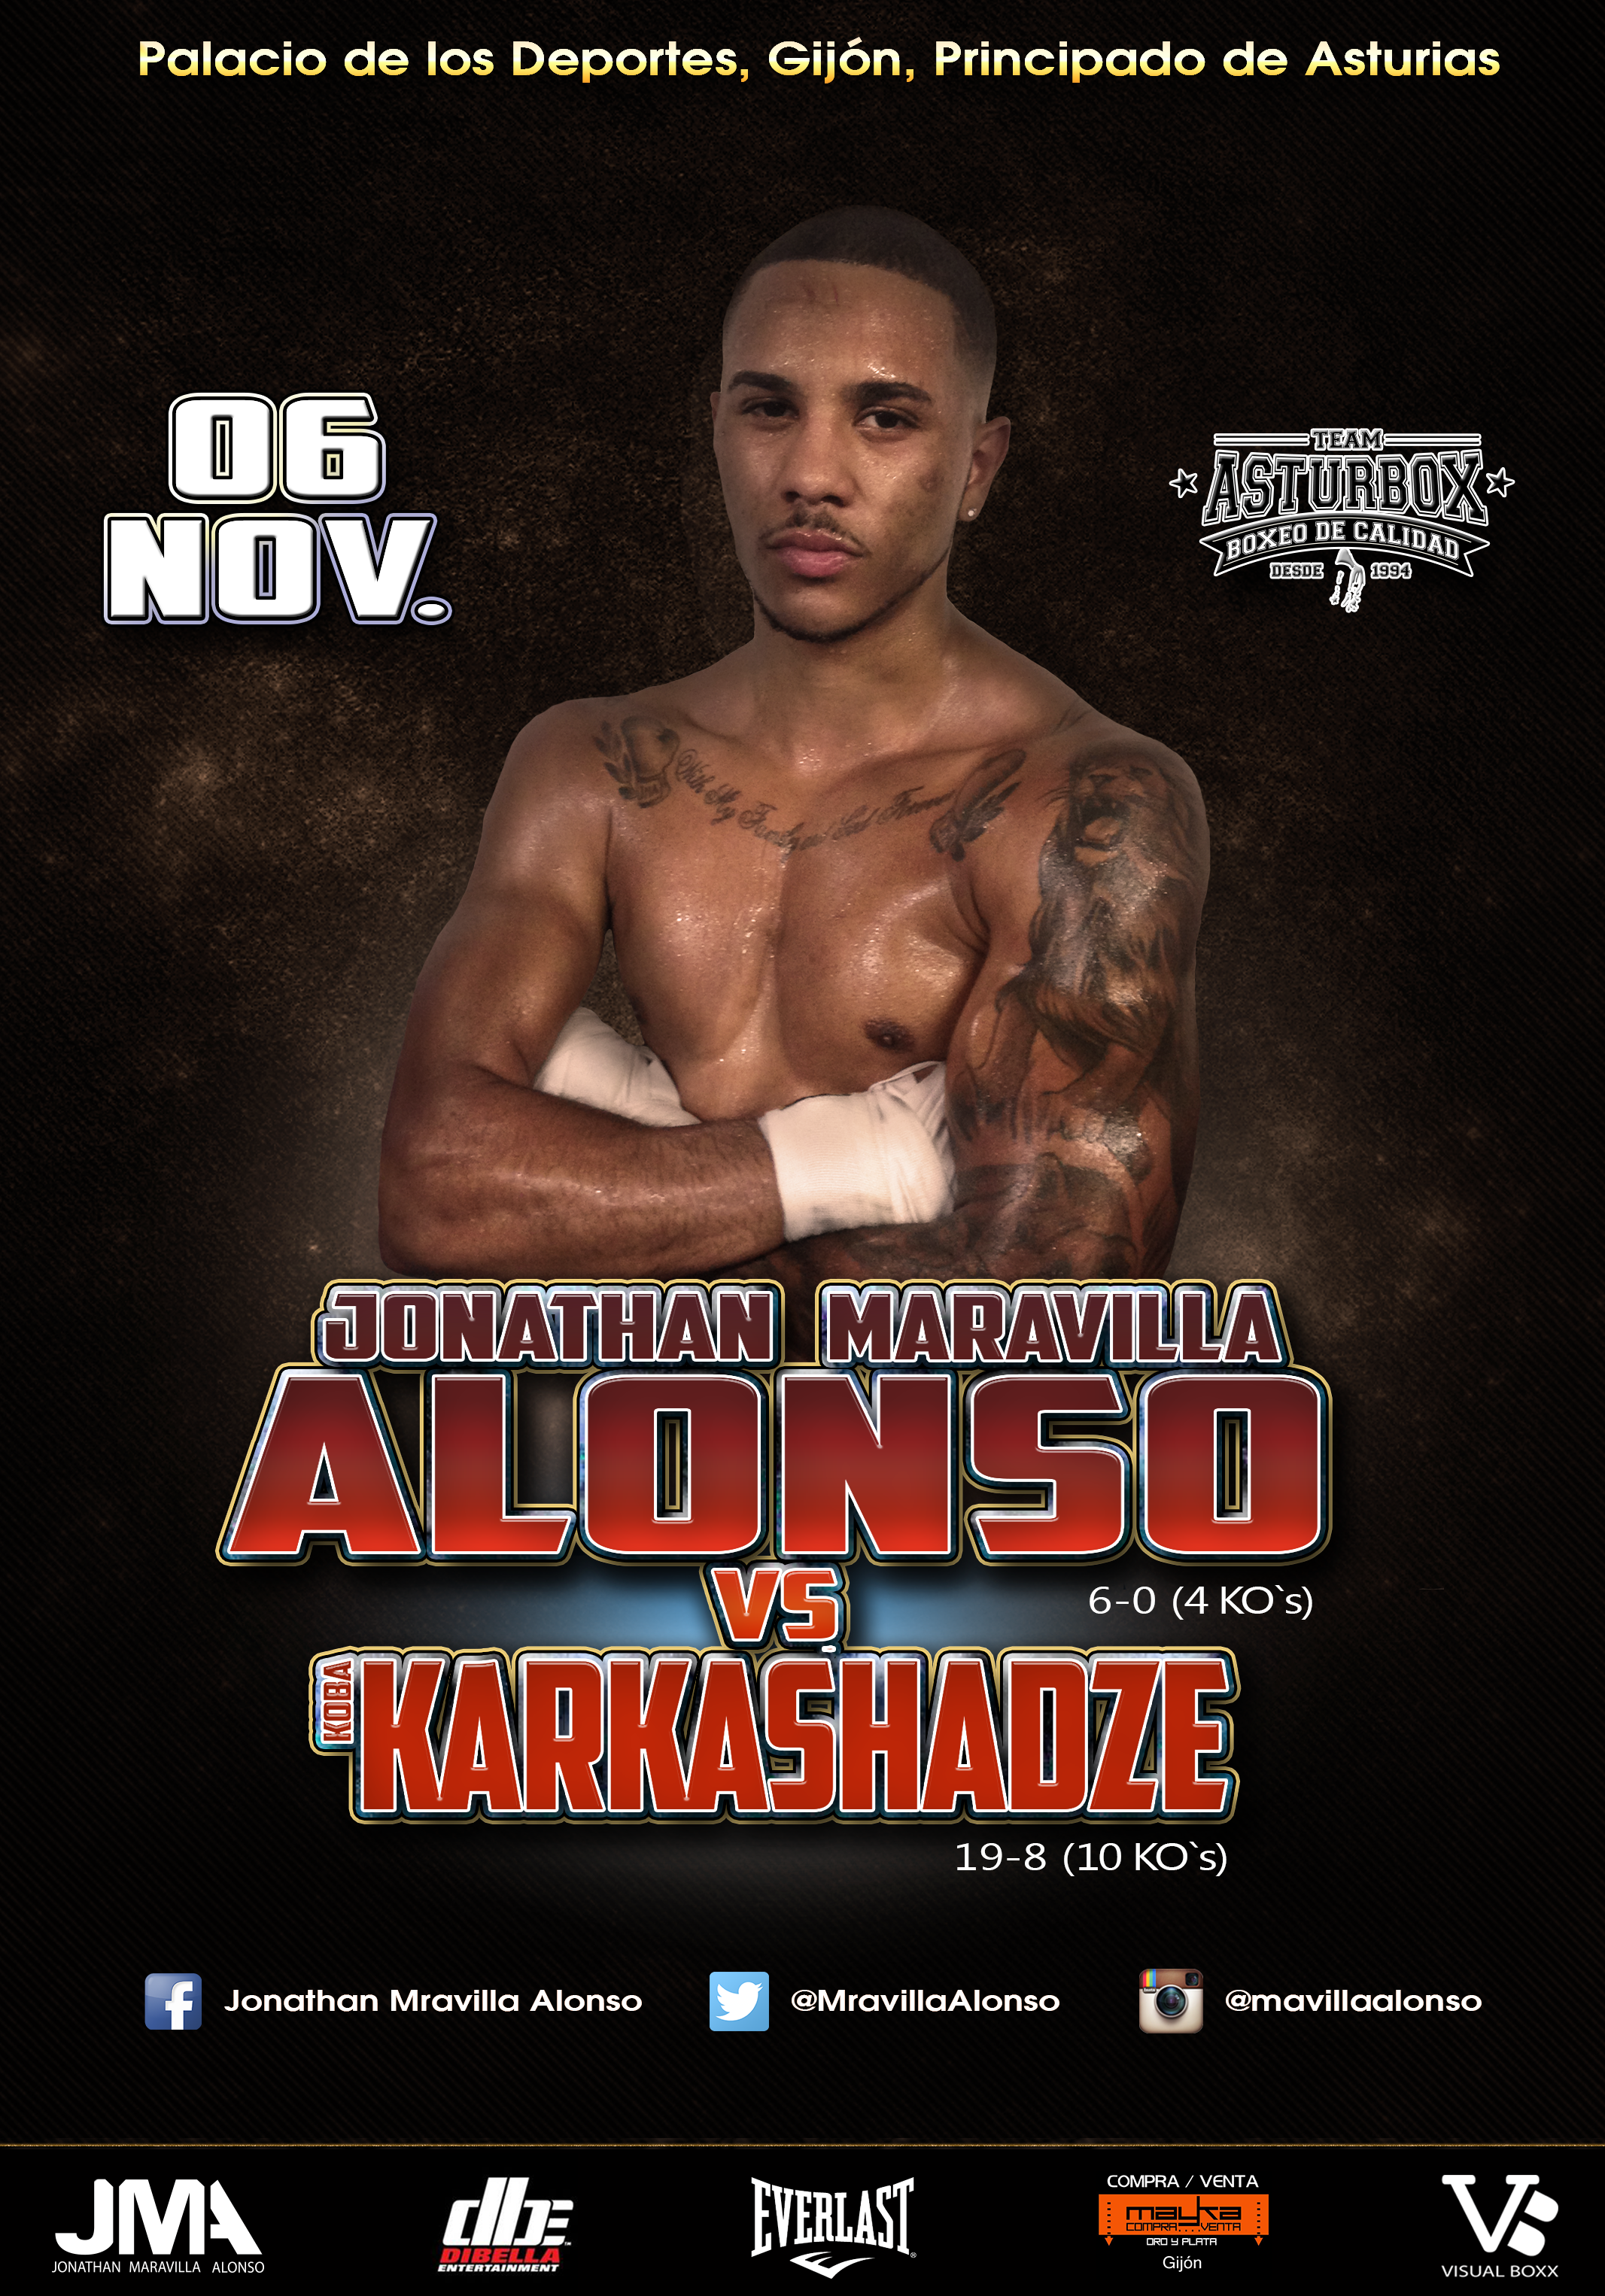 JMA FIGHT POSTER DESIGN#boxing #motivation #mma #ufc #fitness #bjj ...